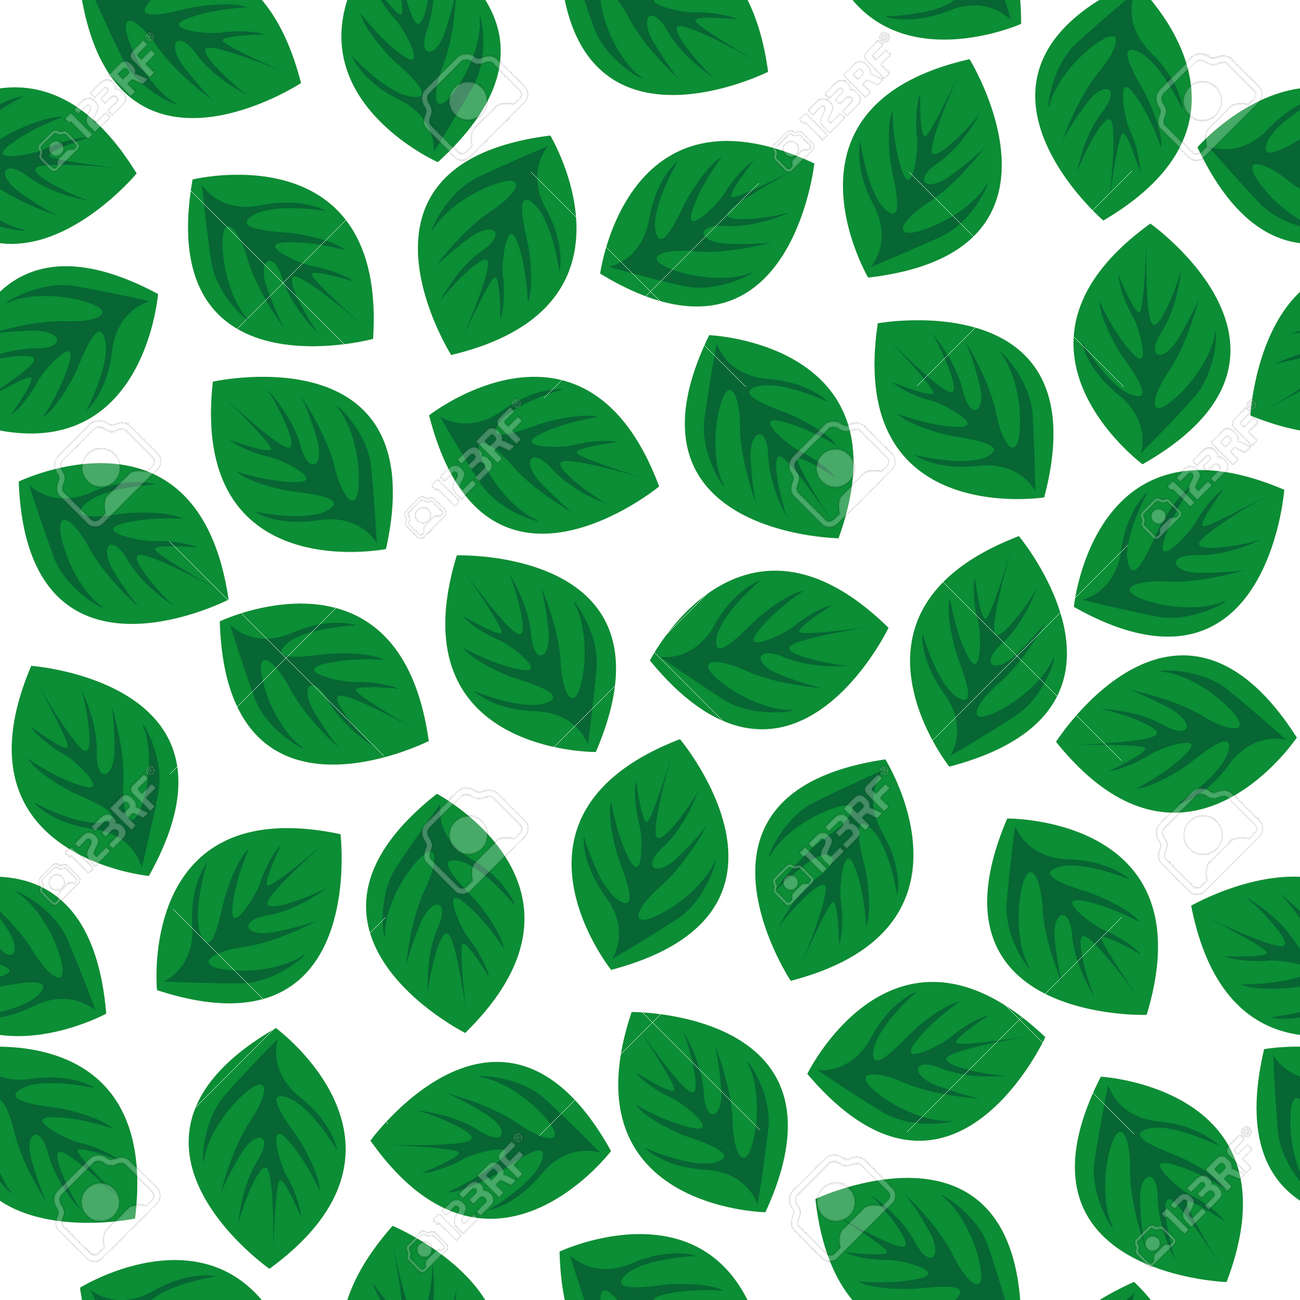 Seamless pattern with green leaves. Vector illustration Stock Vector - 88187496